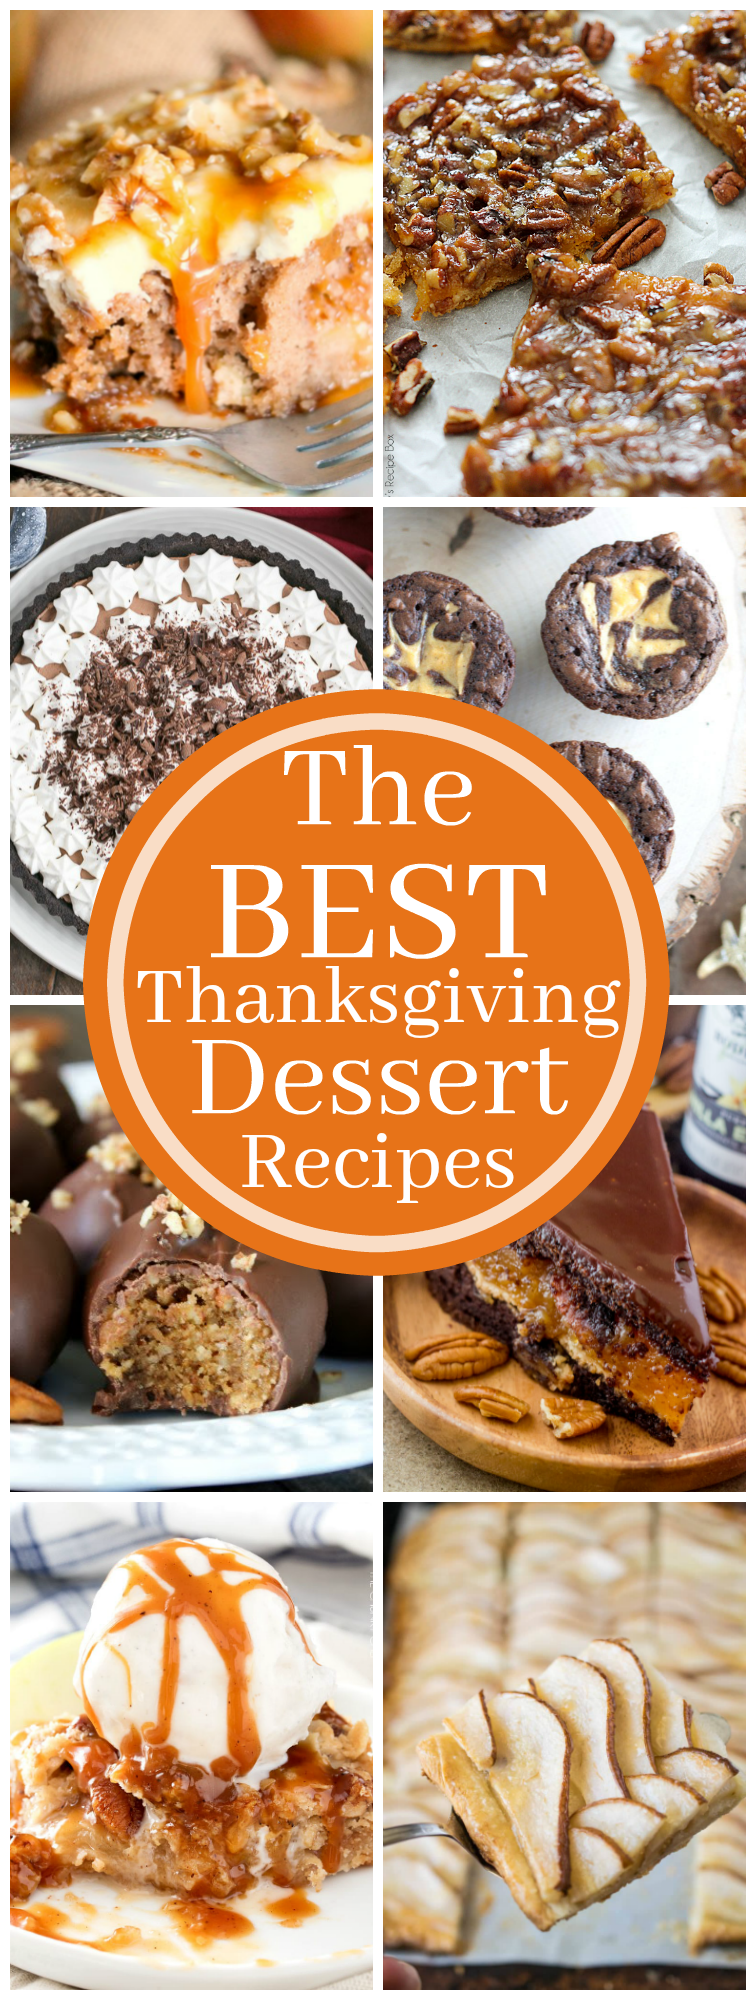 Over 15 of The Best Thanksgiving Dessert Recipes can be found right here! Everything from pies, to tarts, to truffles! You are going to want to dig in!